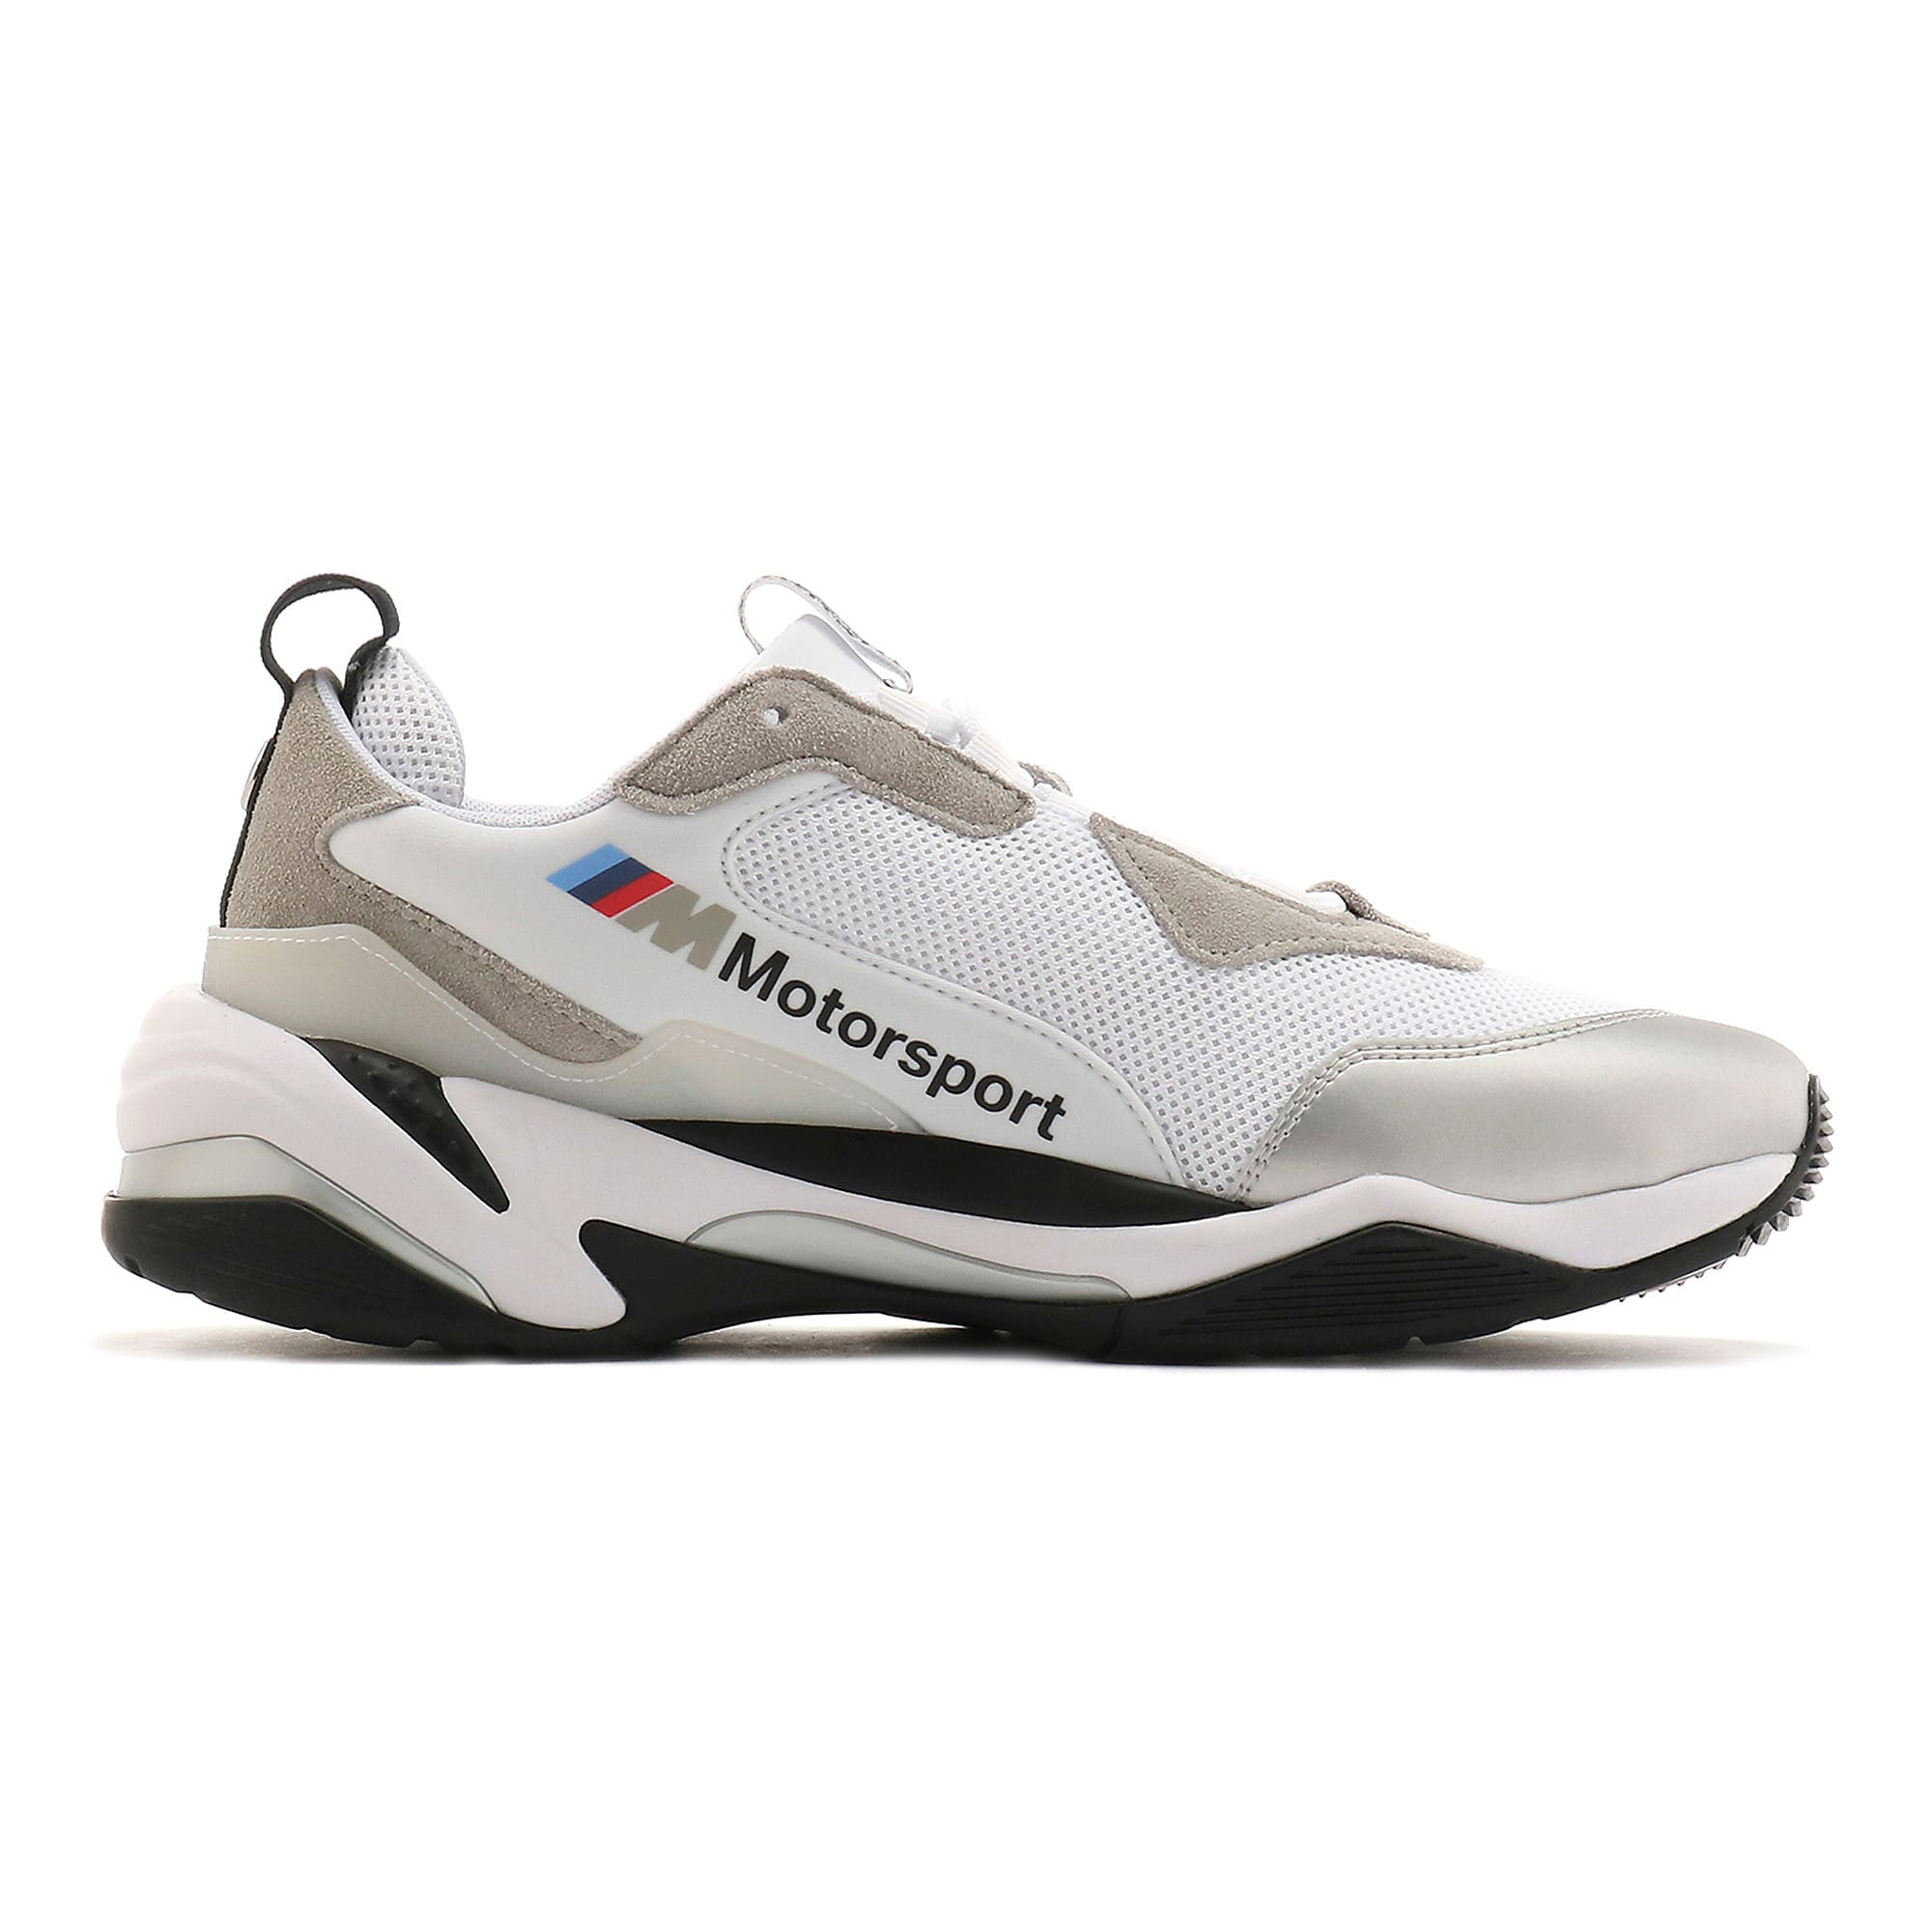 BMW MMS Thunder Sneakers, Puma White-Puma Silver, large